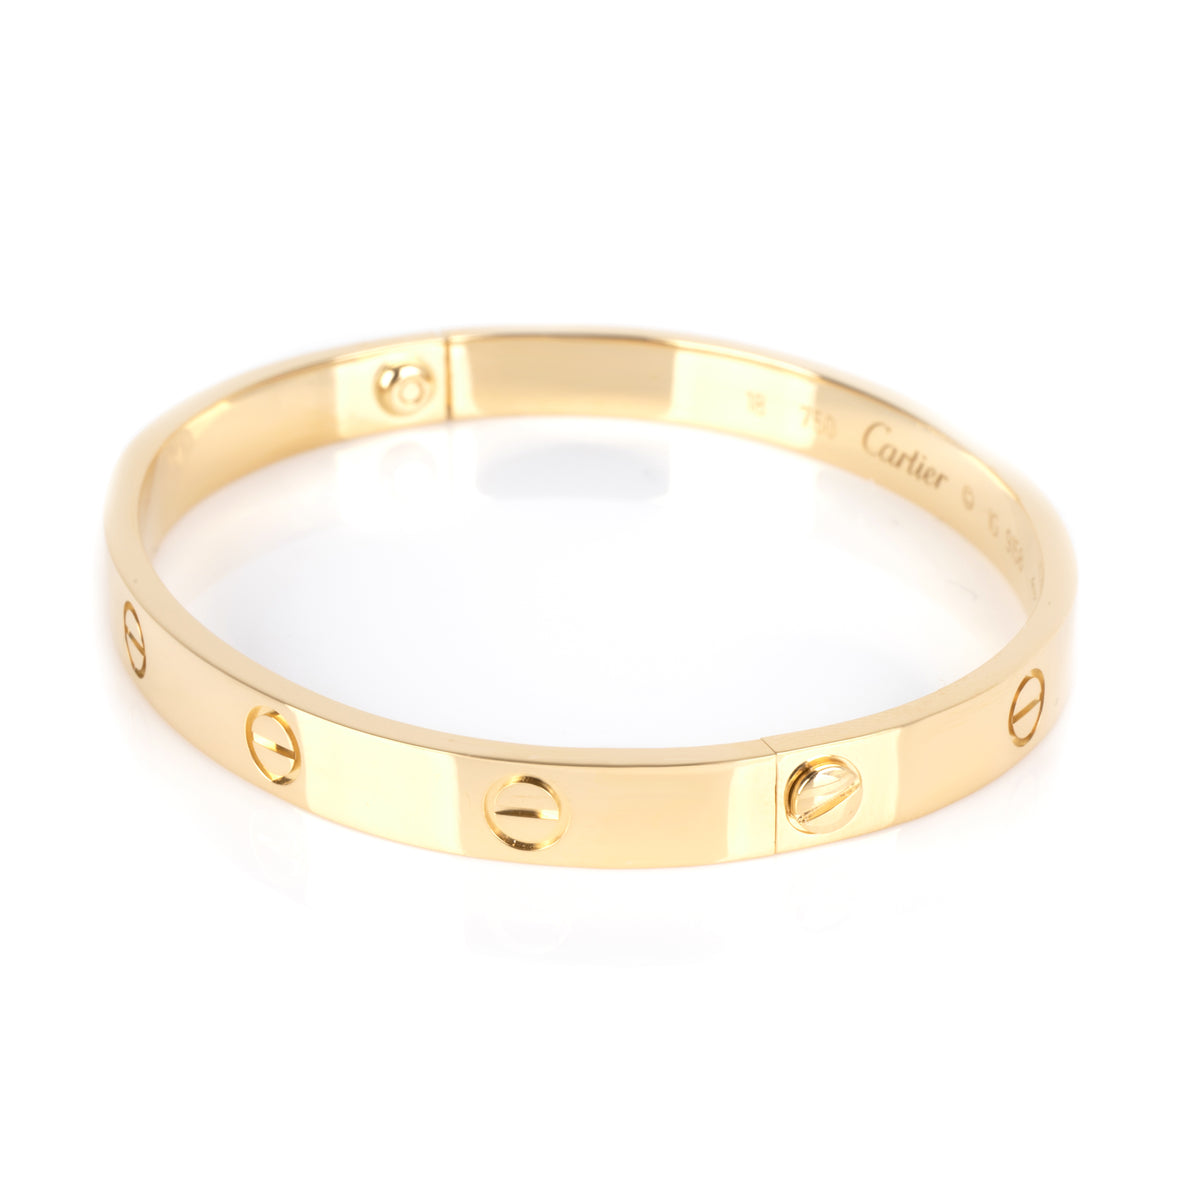 Cartier Love Bracelet in 18K Yellow Gold Size 18